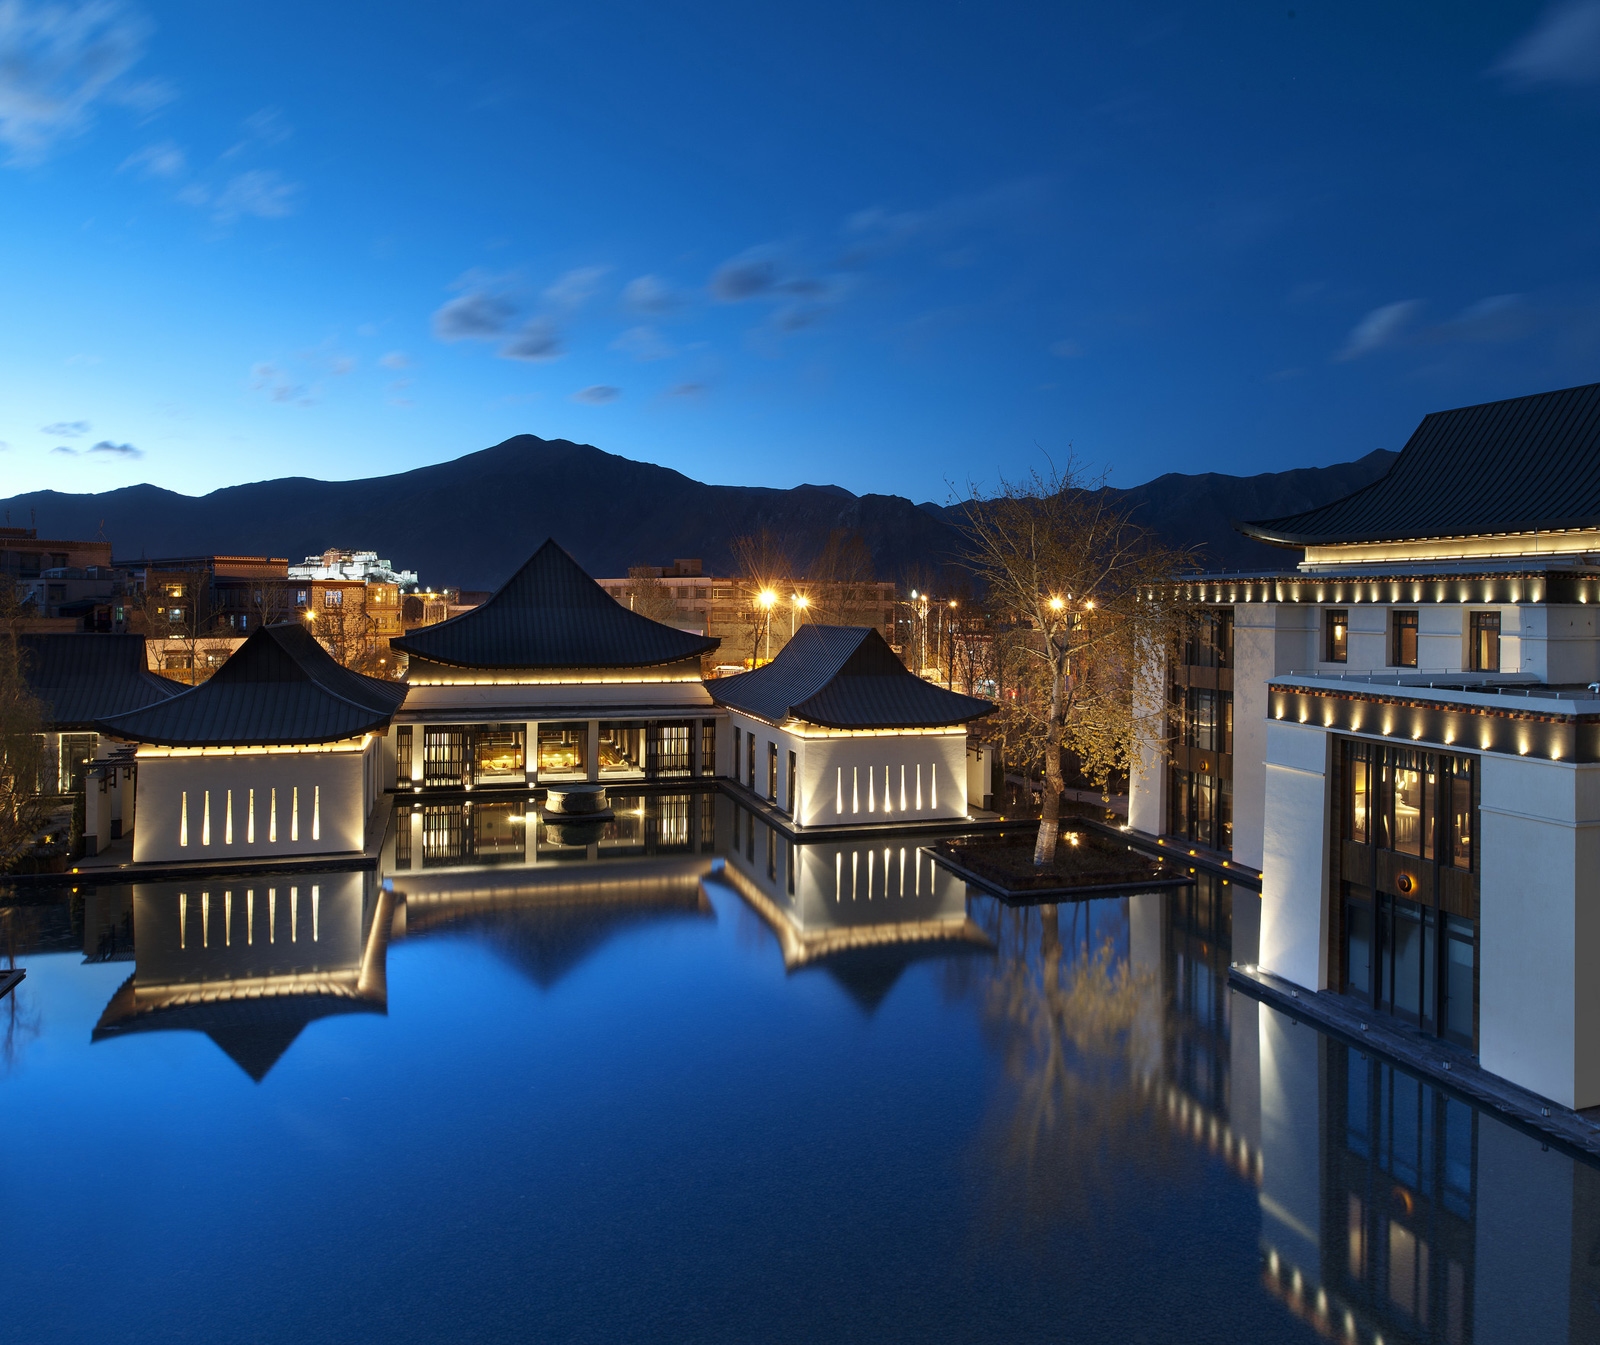 St regis lhasa tibet 39 s first five star hotel extravaganzi for Hotel luxury